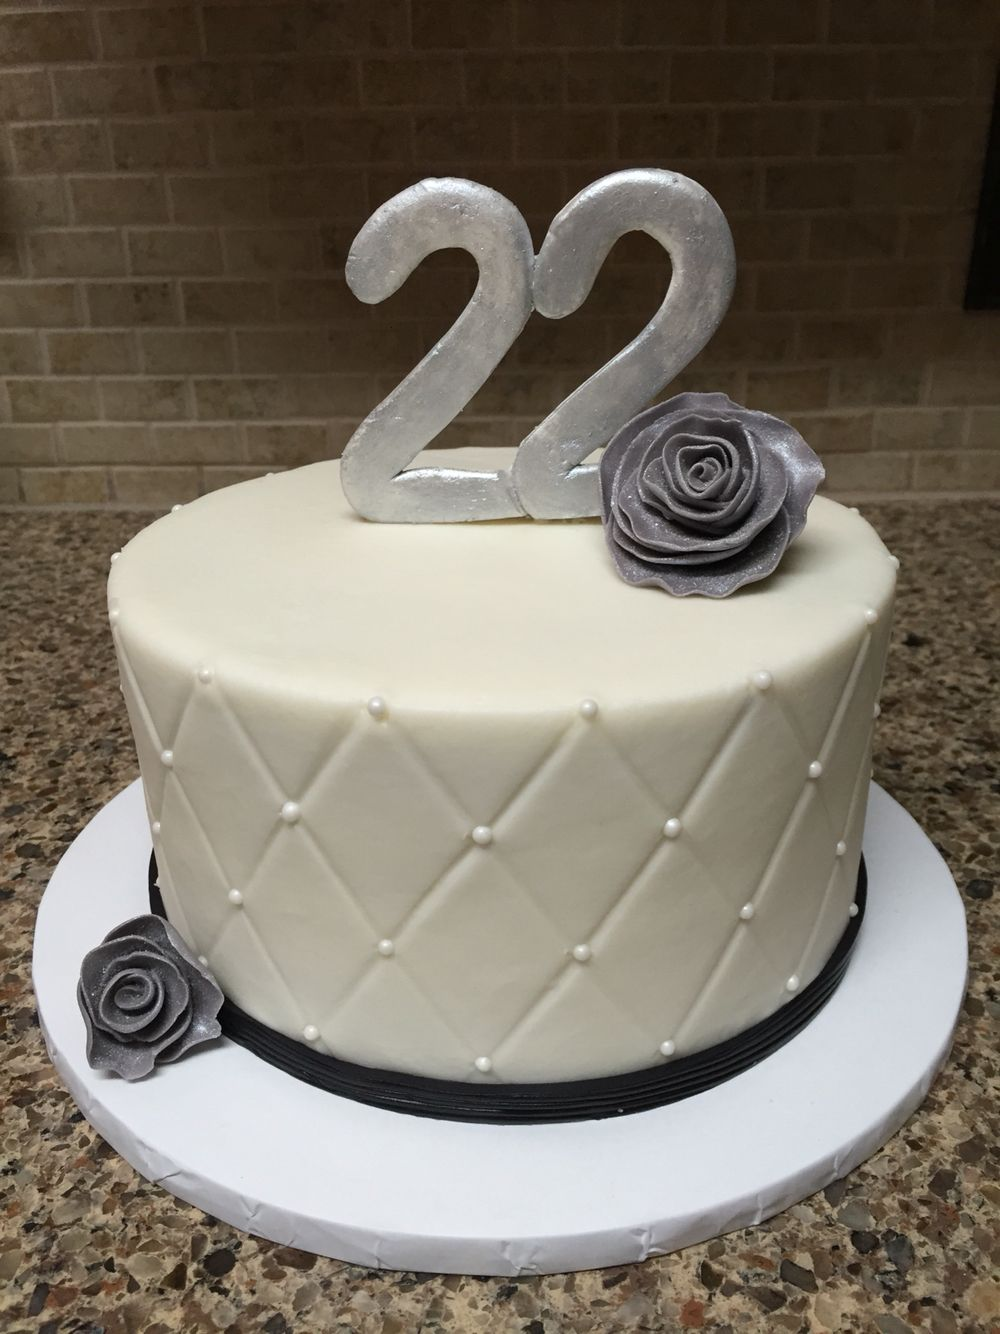 Marvelous Black And White 22Nd Birthday Cake 7 Inch Chocolate Fudge Cake Personalised Birthday Cards Sponlily Jamesorg